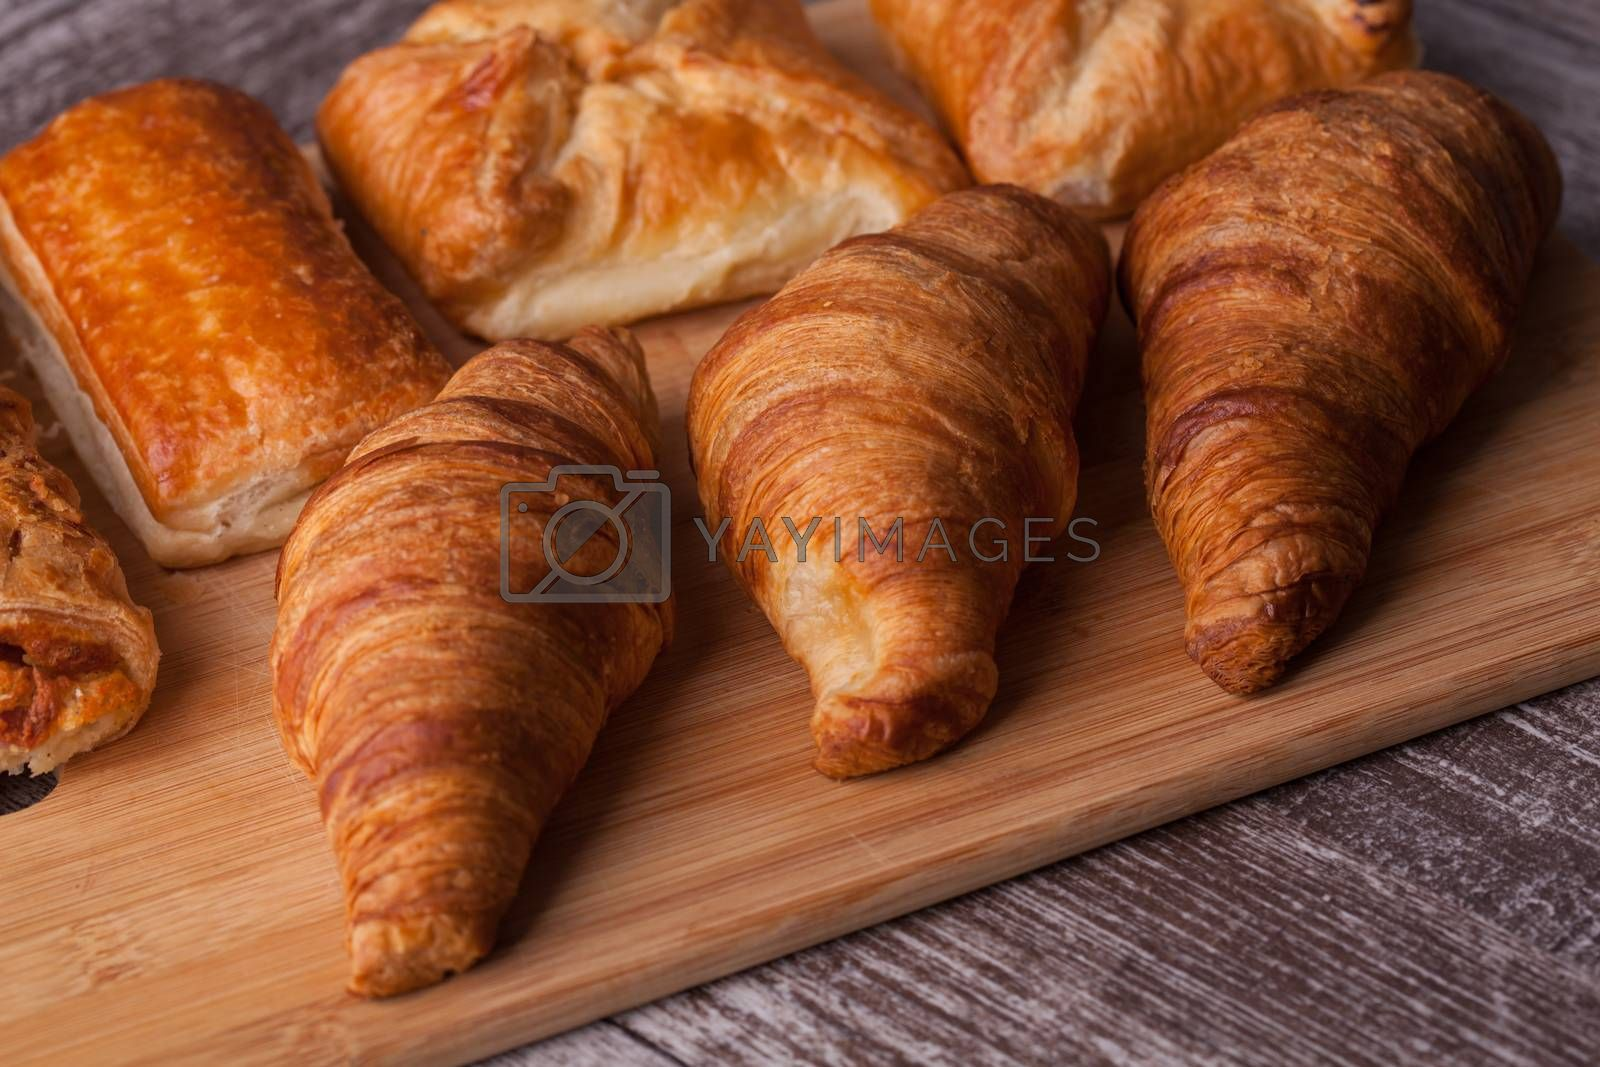 Assortment of french pastries on cutting board by DCStudio